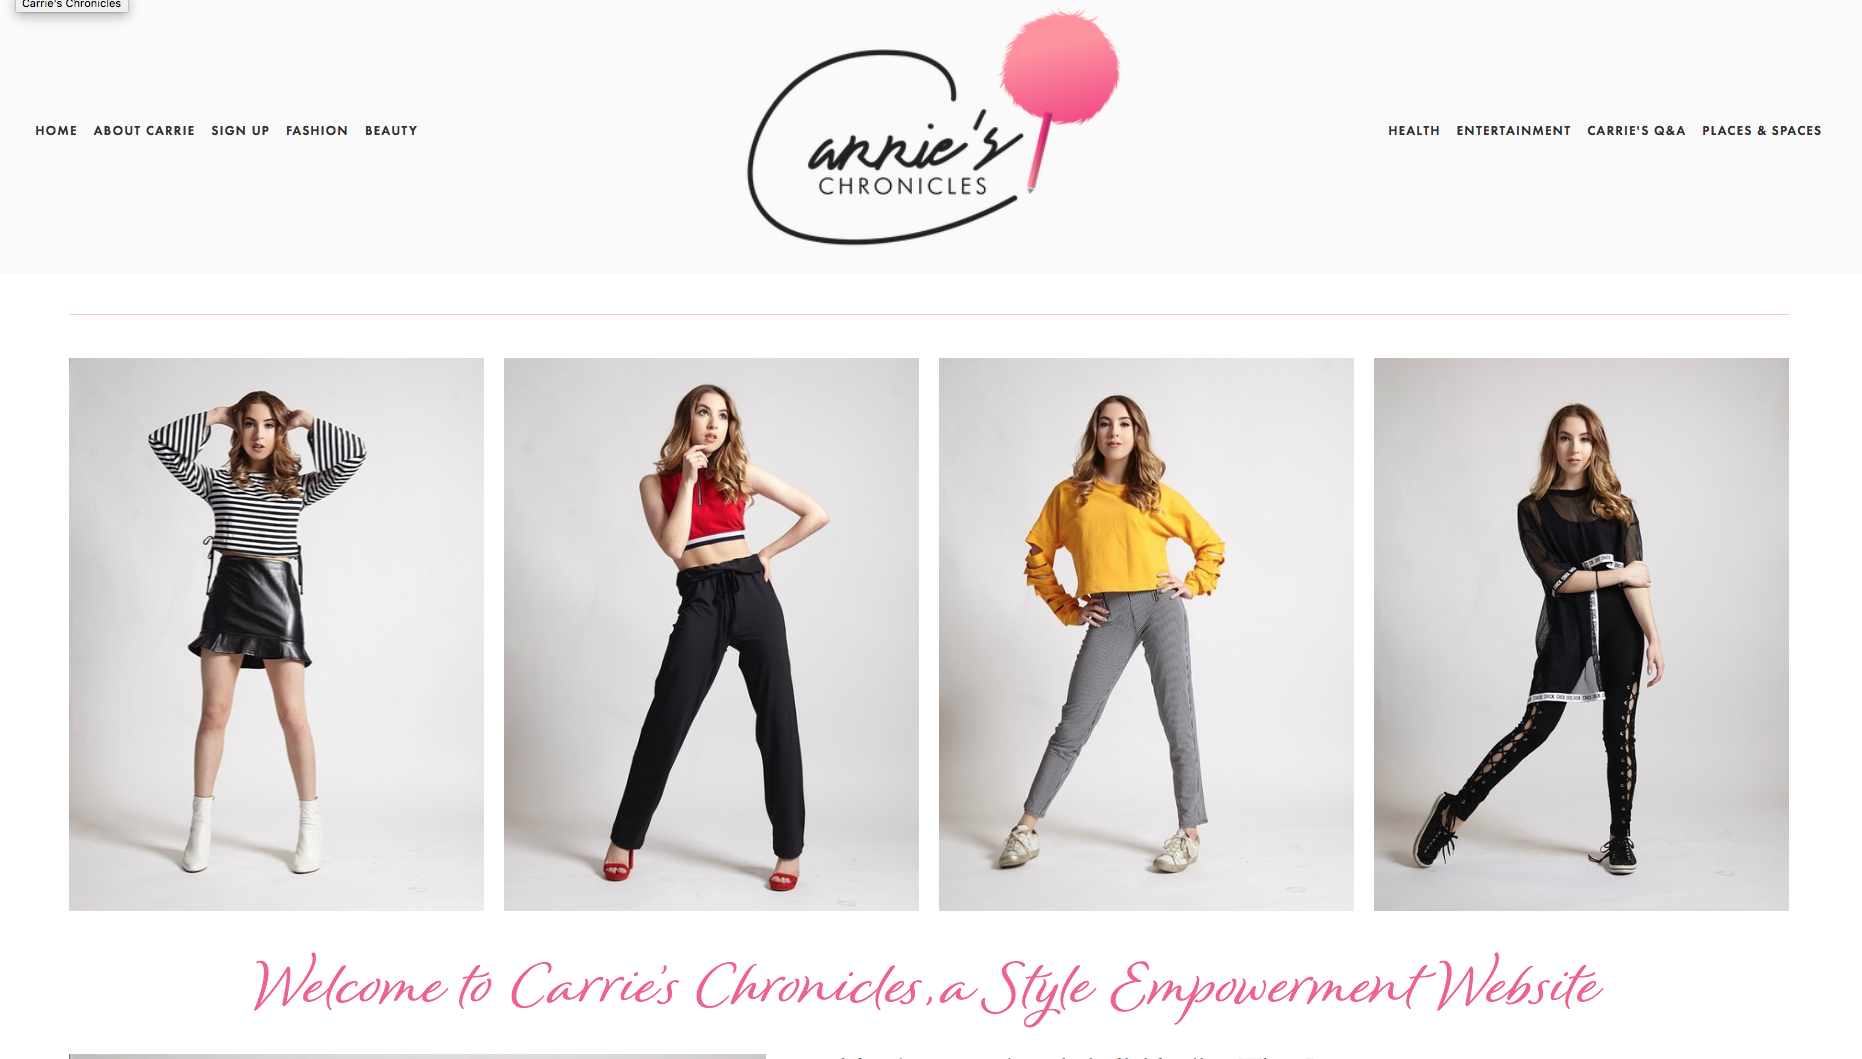 Carrie's Chronicles: A Style Empowerment Site